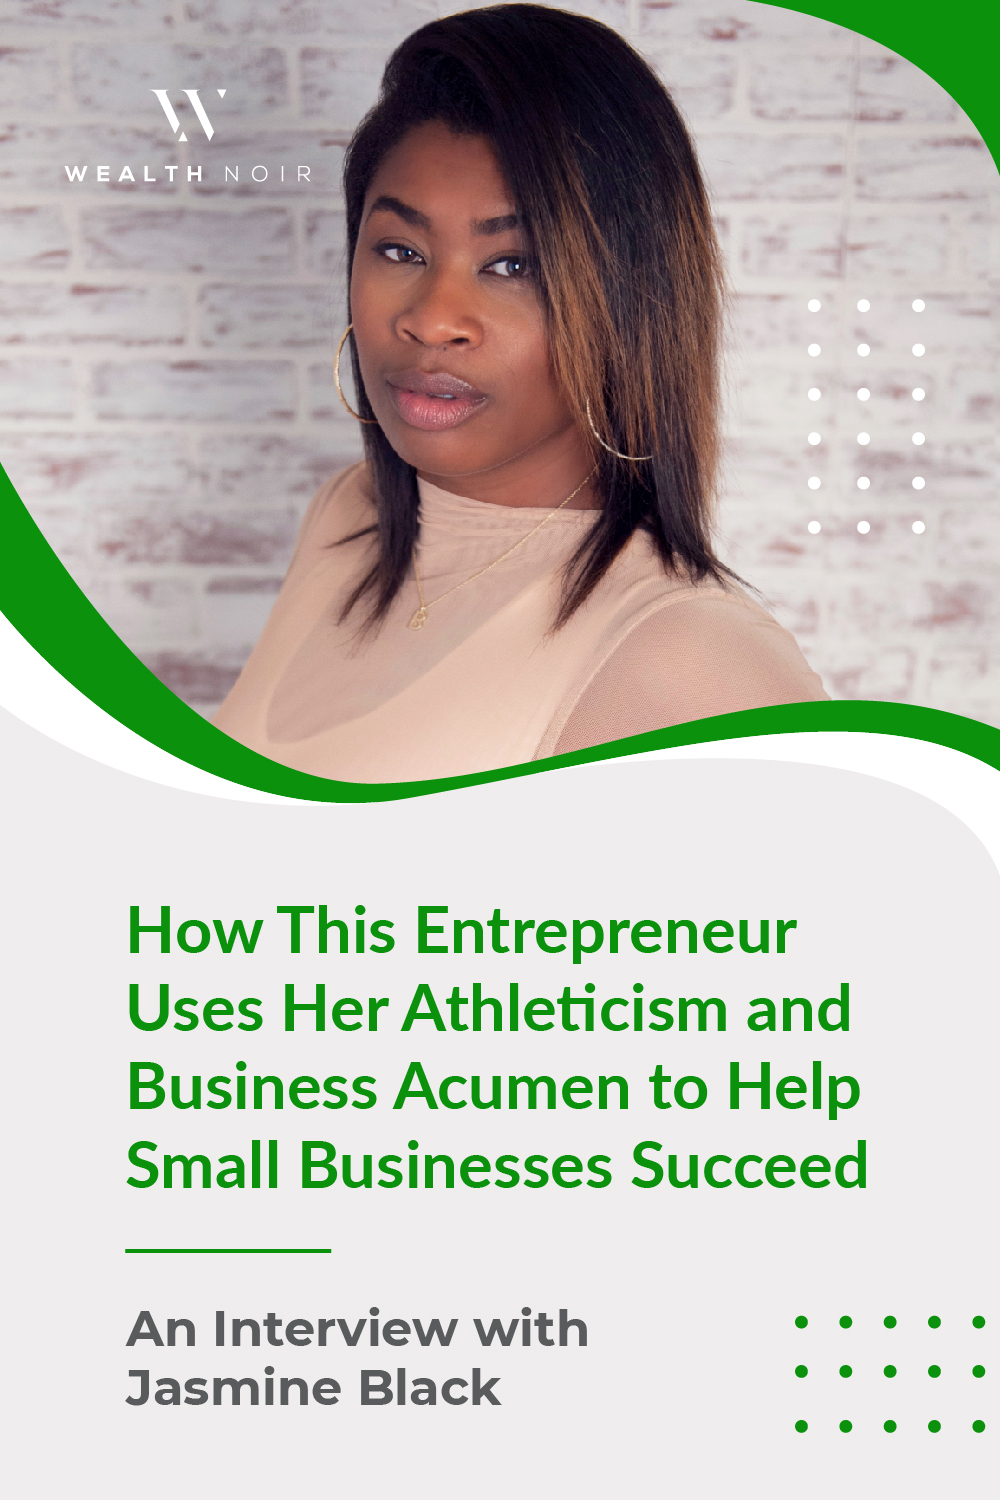 How This Entrepreneur Uses Her Athleticism and Business Acumen to Help Small Businesses Succeed: An Interview with Jasmine Black